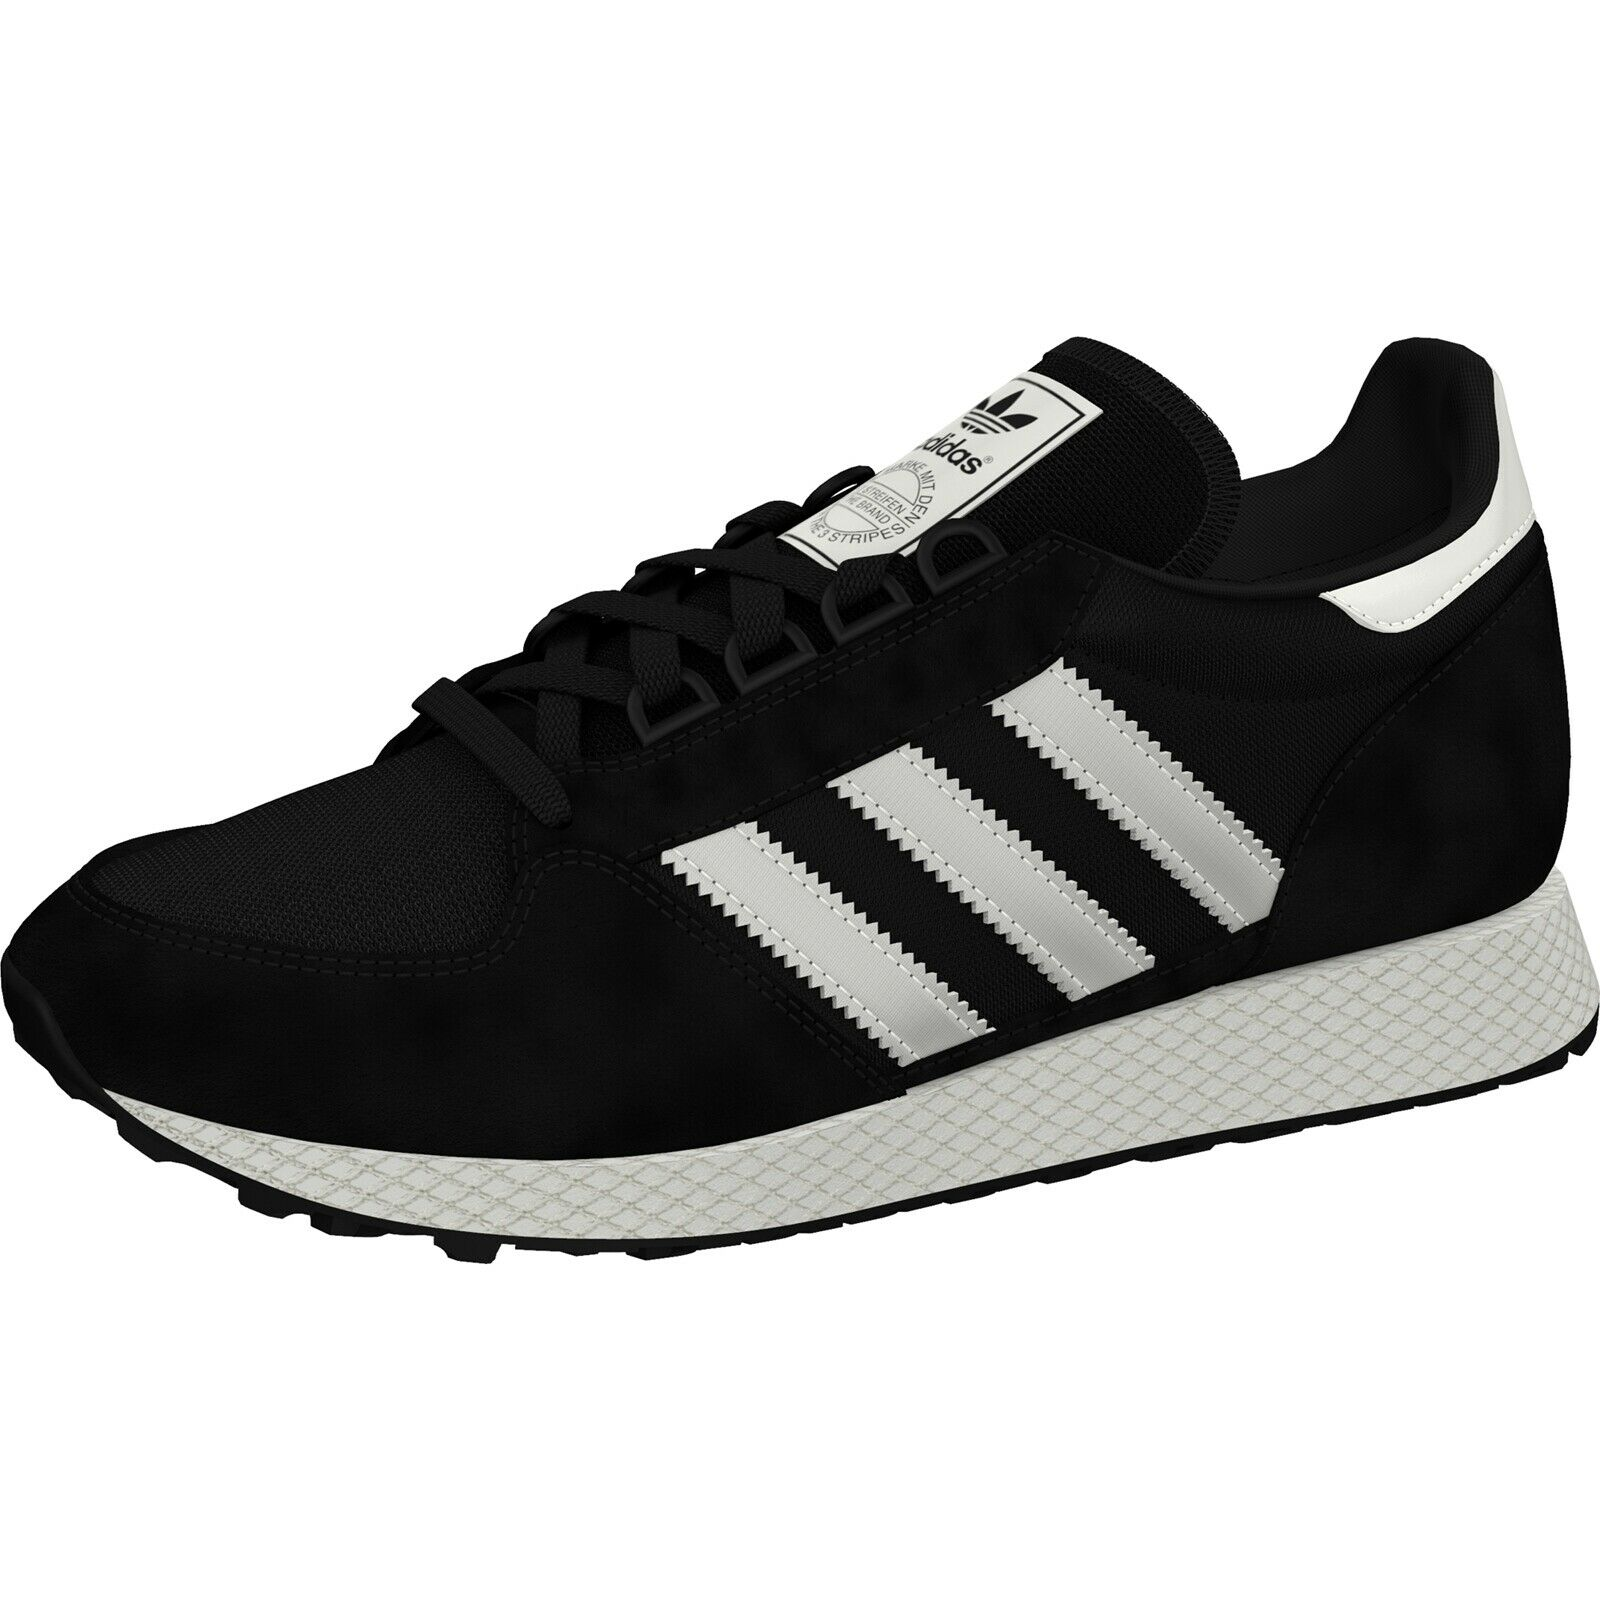 Herren Sneakers Adidas Originals Indoor Super Herrenschuhe Lifestyle Schwarz Weiß B41523 Omnia Ae